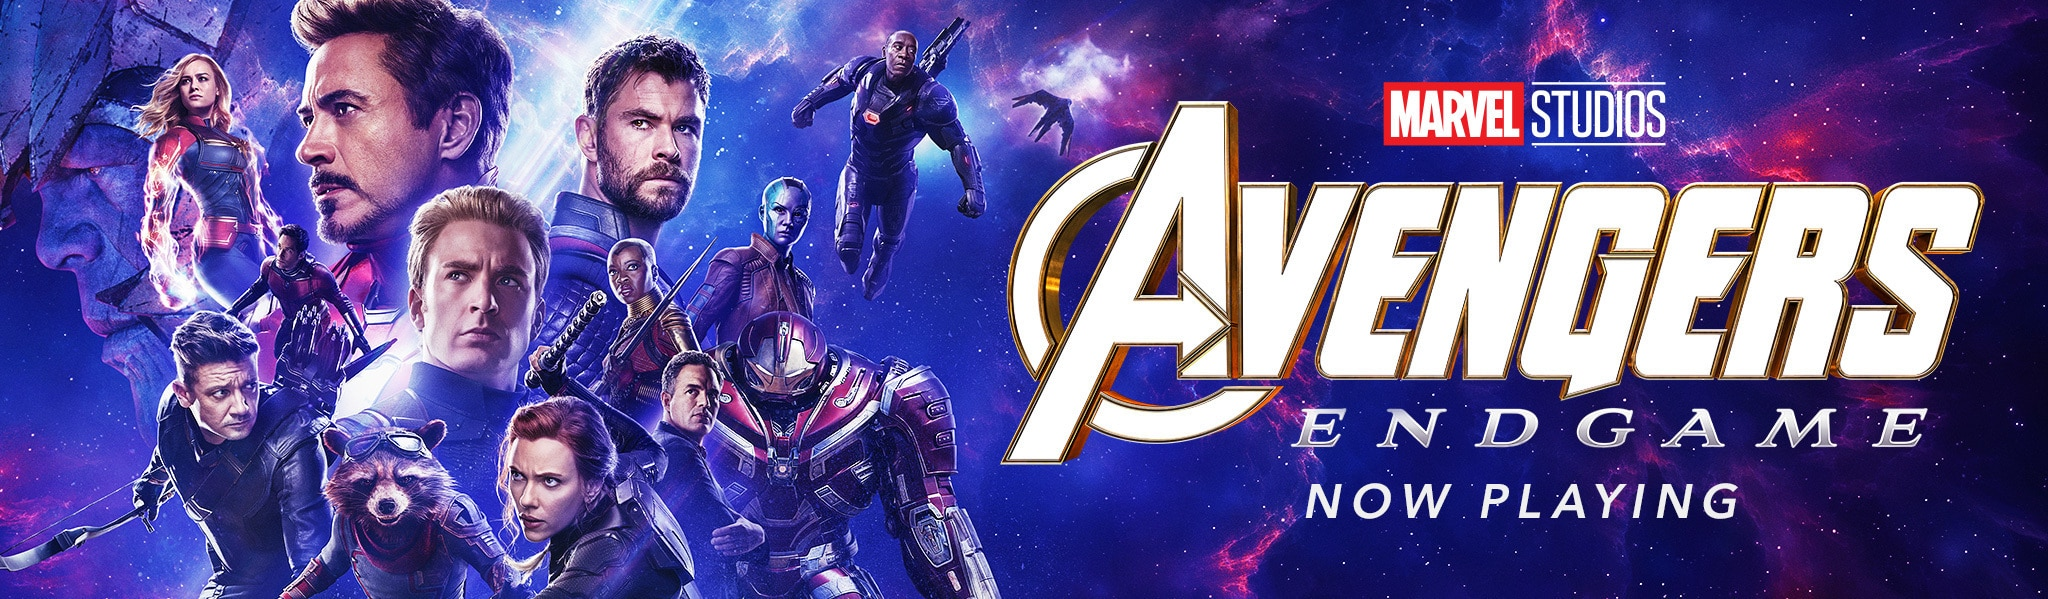 Marvel Studios Avengers Endgame - Now Playing